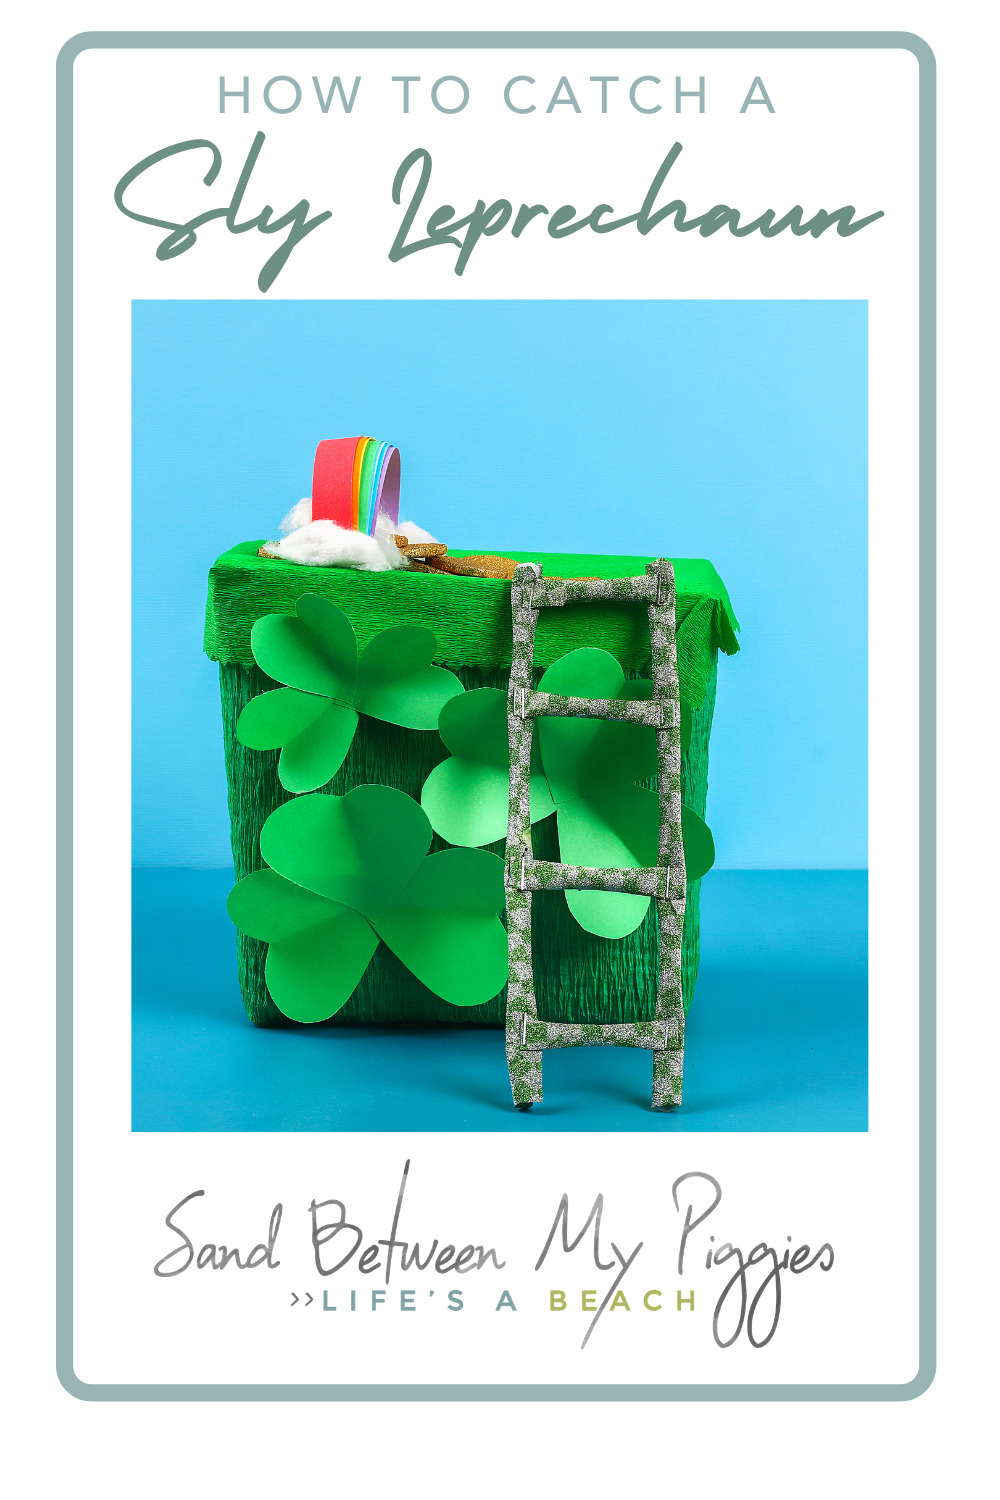 Sandbetweenmypiggies.com is all about making life simpler and more fun. Kids love the tradition of leprechauns at St. Patrick's Day. Shake things up with these fun and exciting ways to incorporate leprechaun hunting into your St. Patty's day celebration!